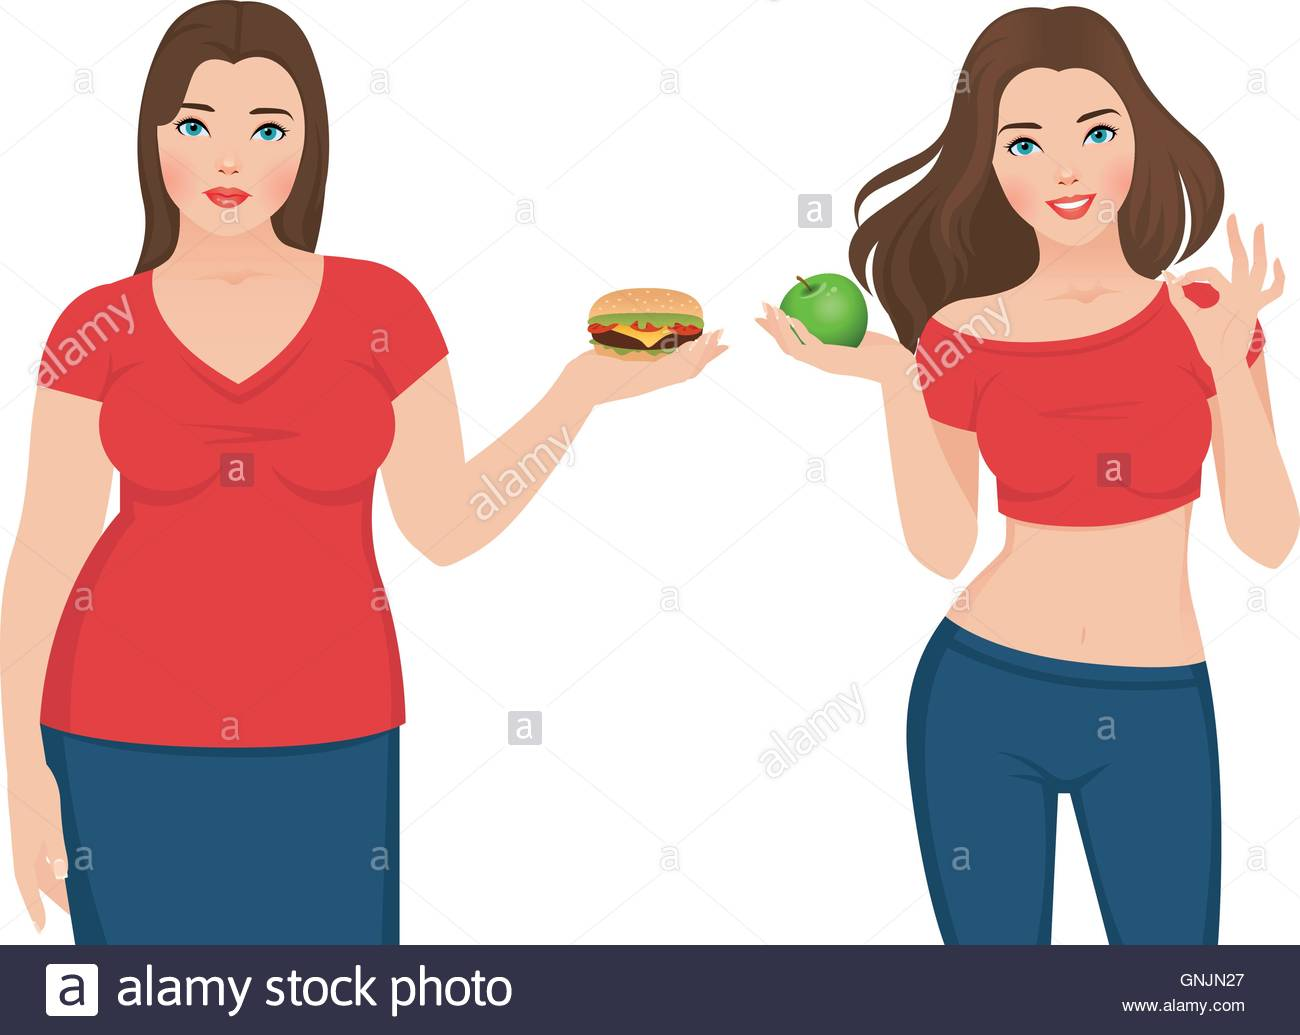 Fat And Slim Woman Before And After Weight Loss Stock Vector Image Art Alamy